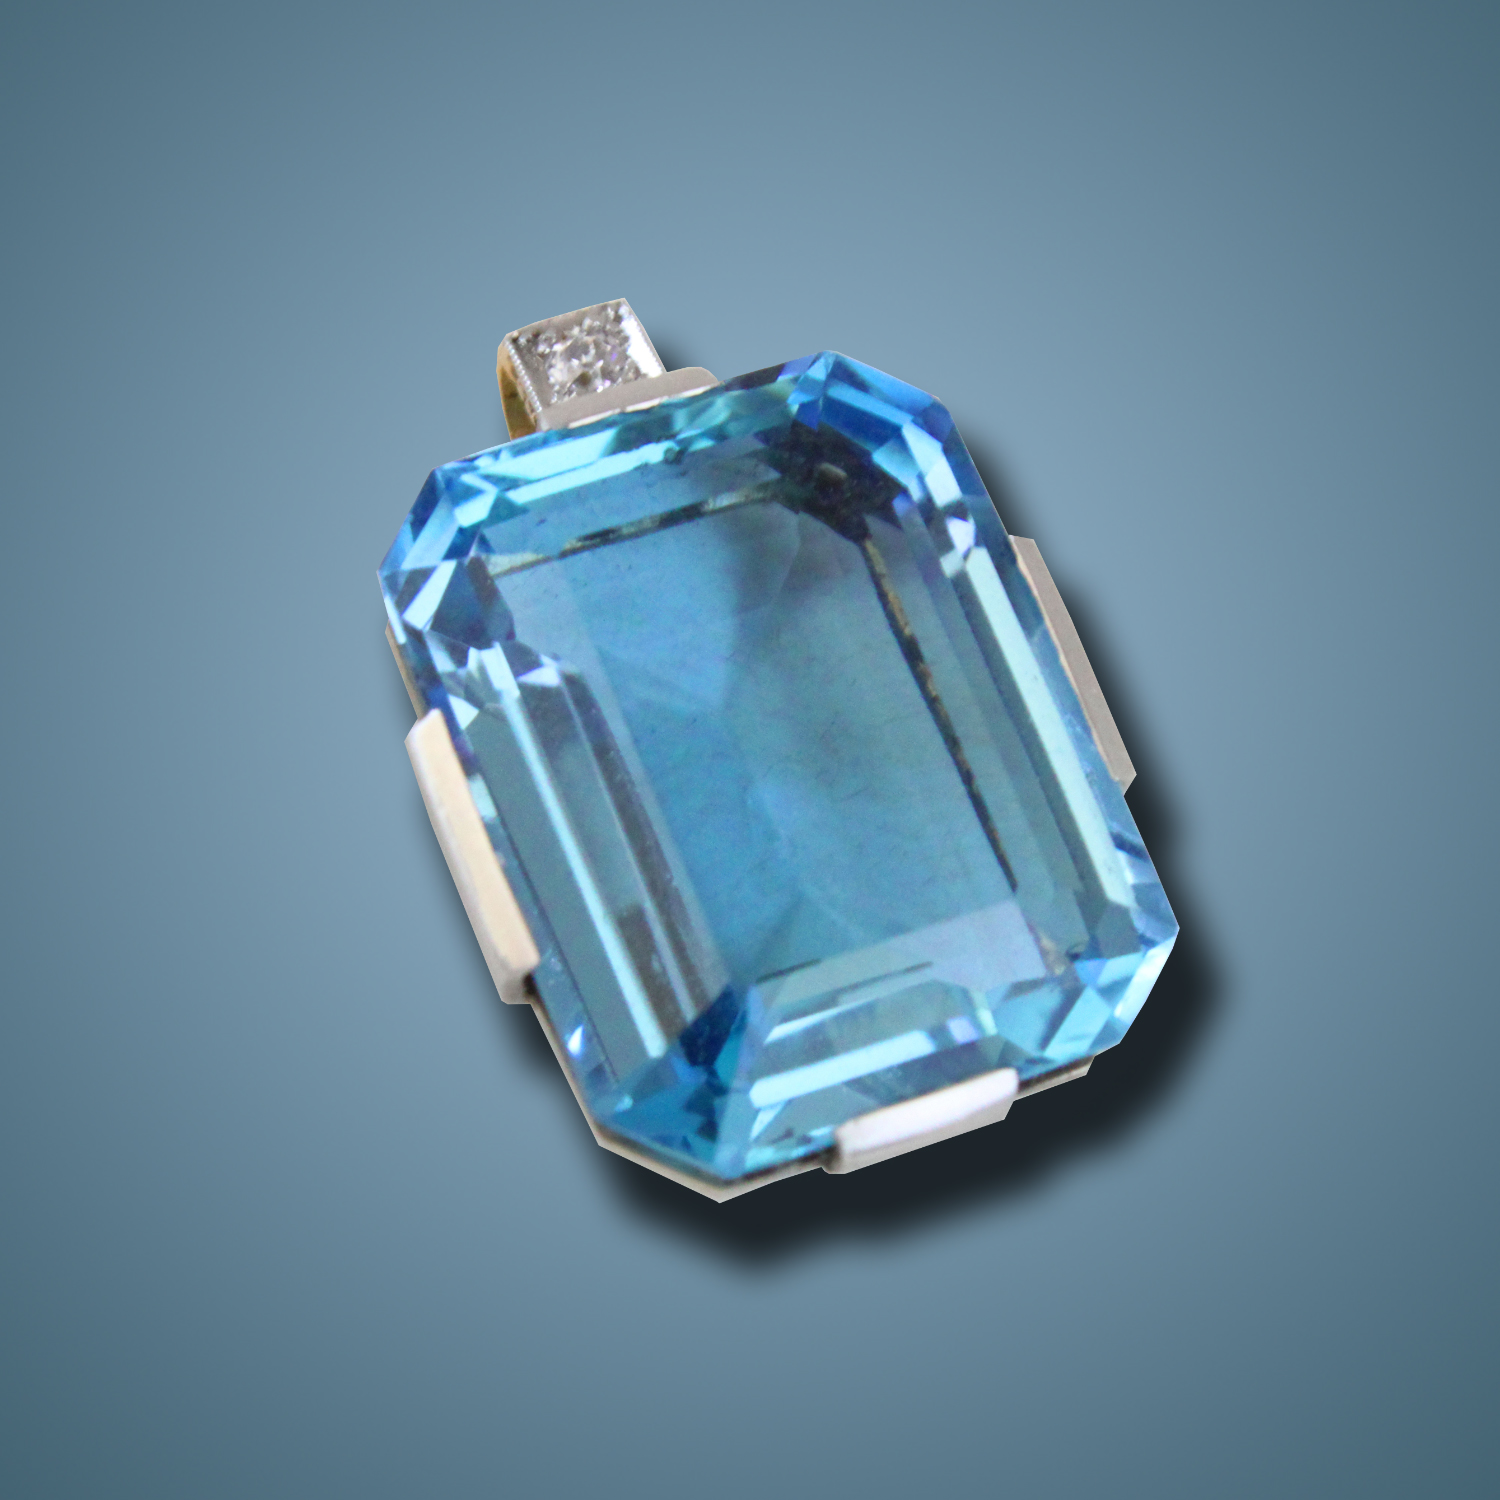 conflict jewelers product h shop aquamarine necklace pendant san oval francisco friendly d free eco